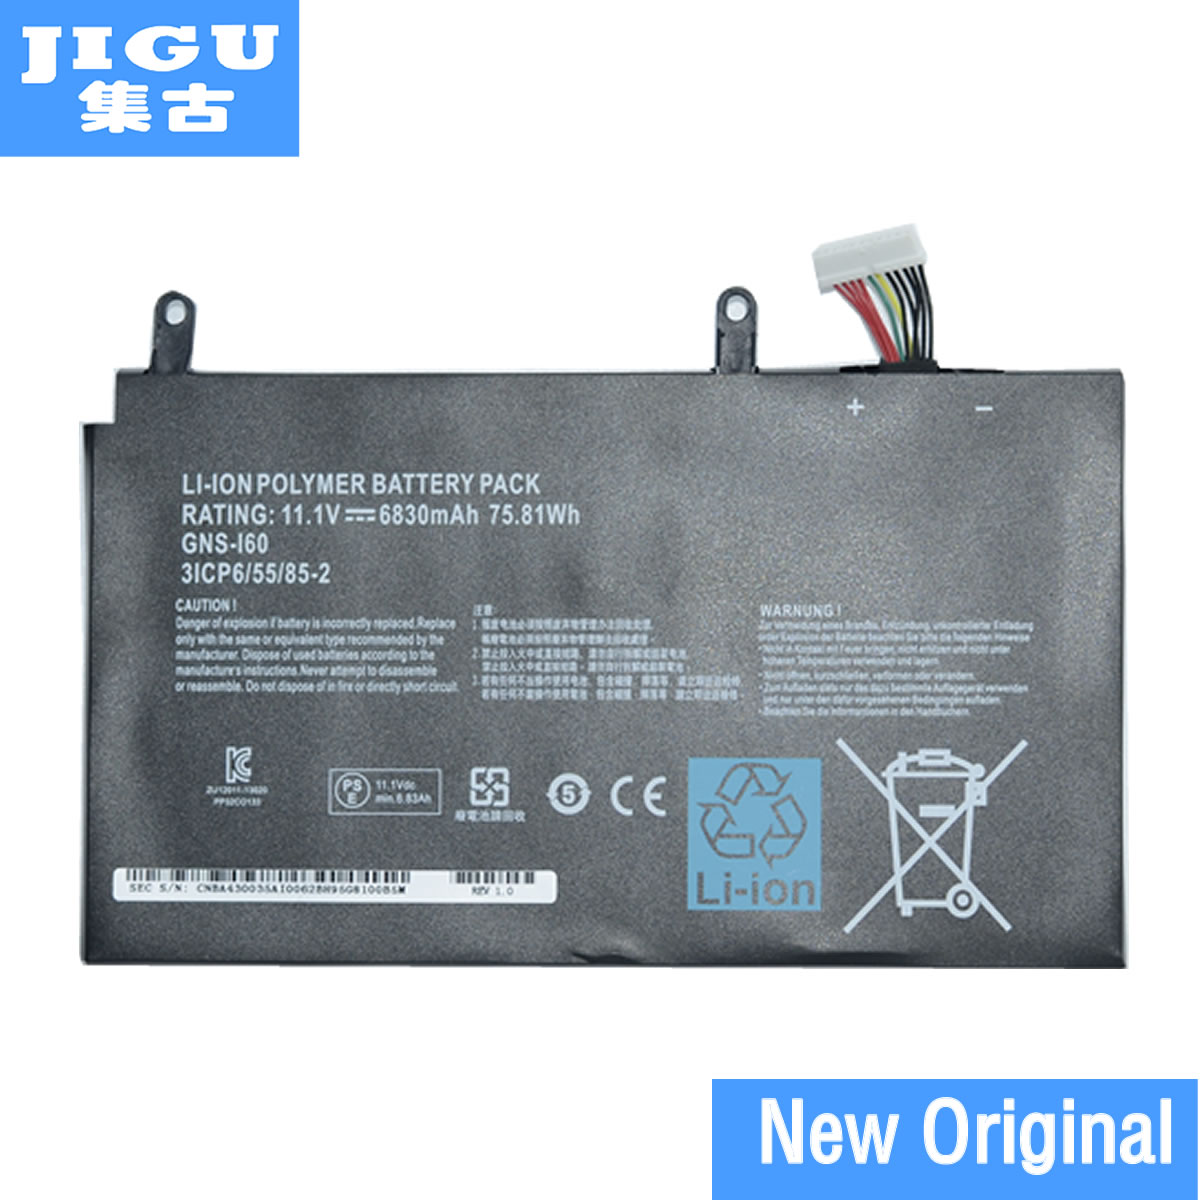 JIGU Original Laptop Battery GNS-160 GNS-I60 961TA010FA FOR GIGABYTE P35G v2 P35K P35W V2 P35X V3 P37X V5 P57W P57X V6 14 8v 73 26wh 4950mah gx 17s new original gx 17s laptop battery for gigabyte aorus x3 x3 plus v3 x7 x7 v2 x3 plus v5 x5s